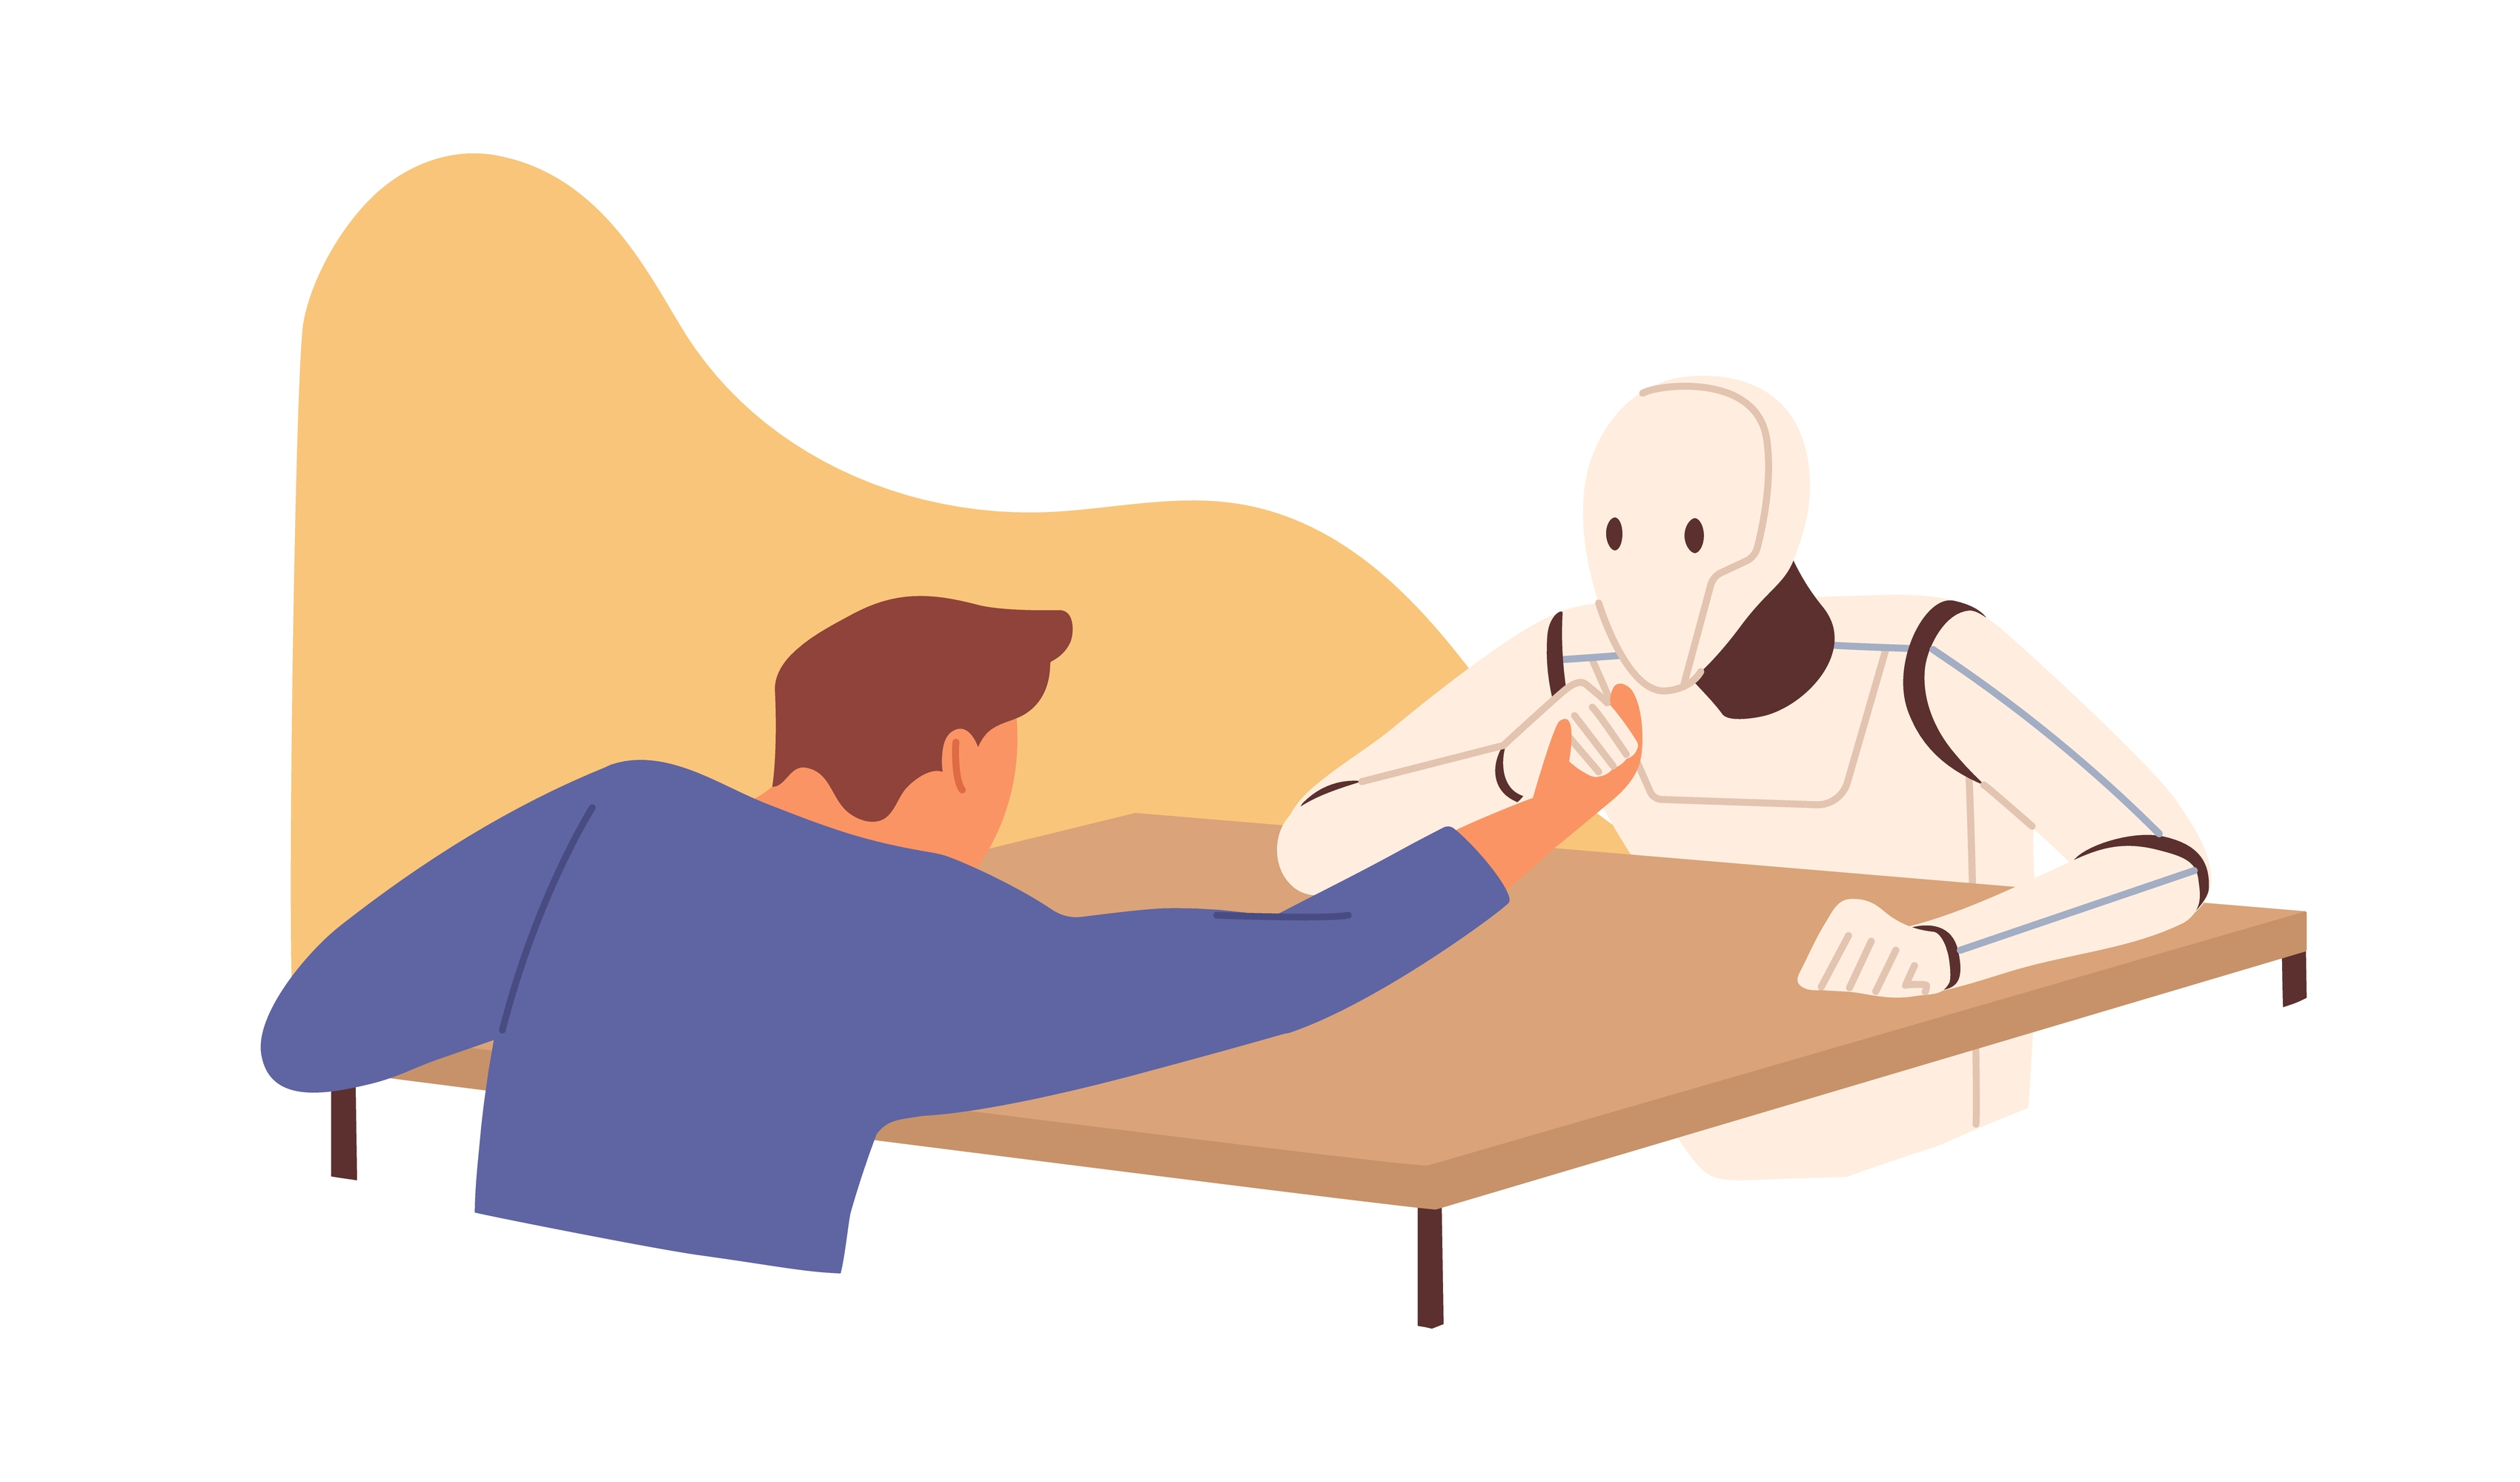 Computer and human arm wrestling